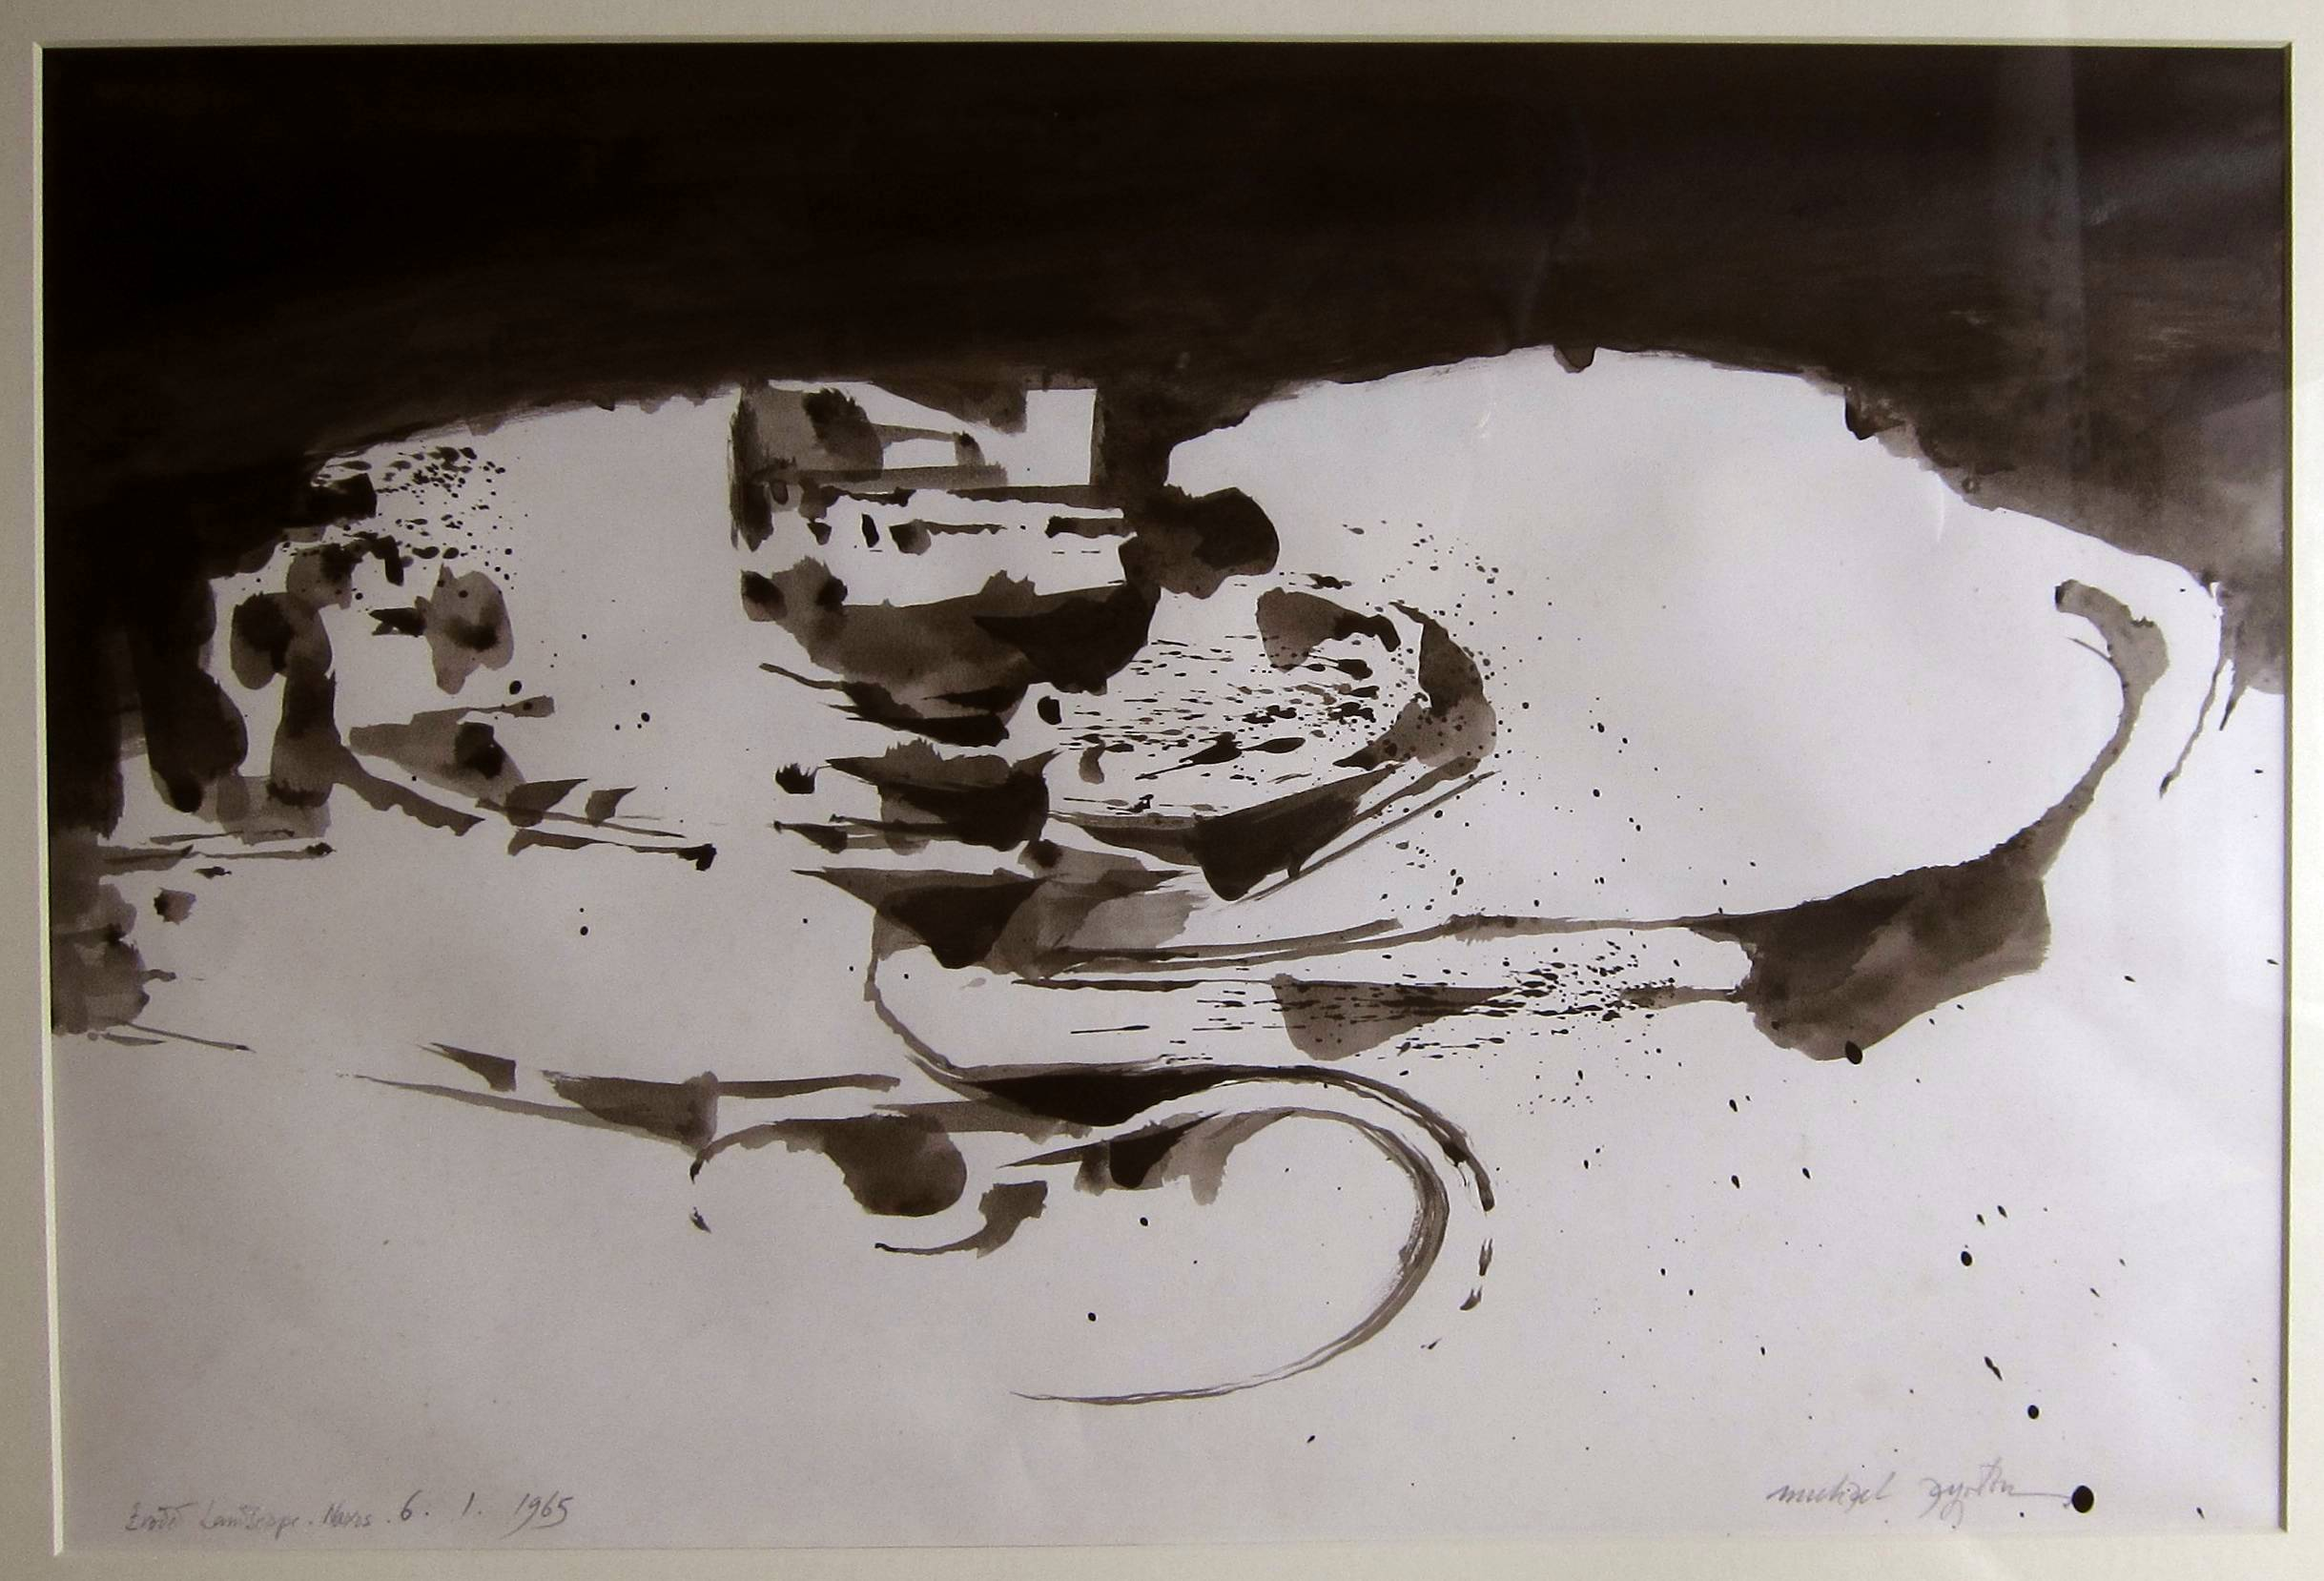 Lot 37 - MICHAEL AYRTON [1921-75]. Eroded Landscape, Naxos, 1965. ink and wash. signed and dated. 55 x 37